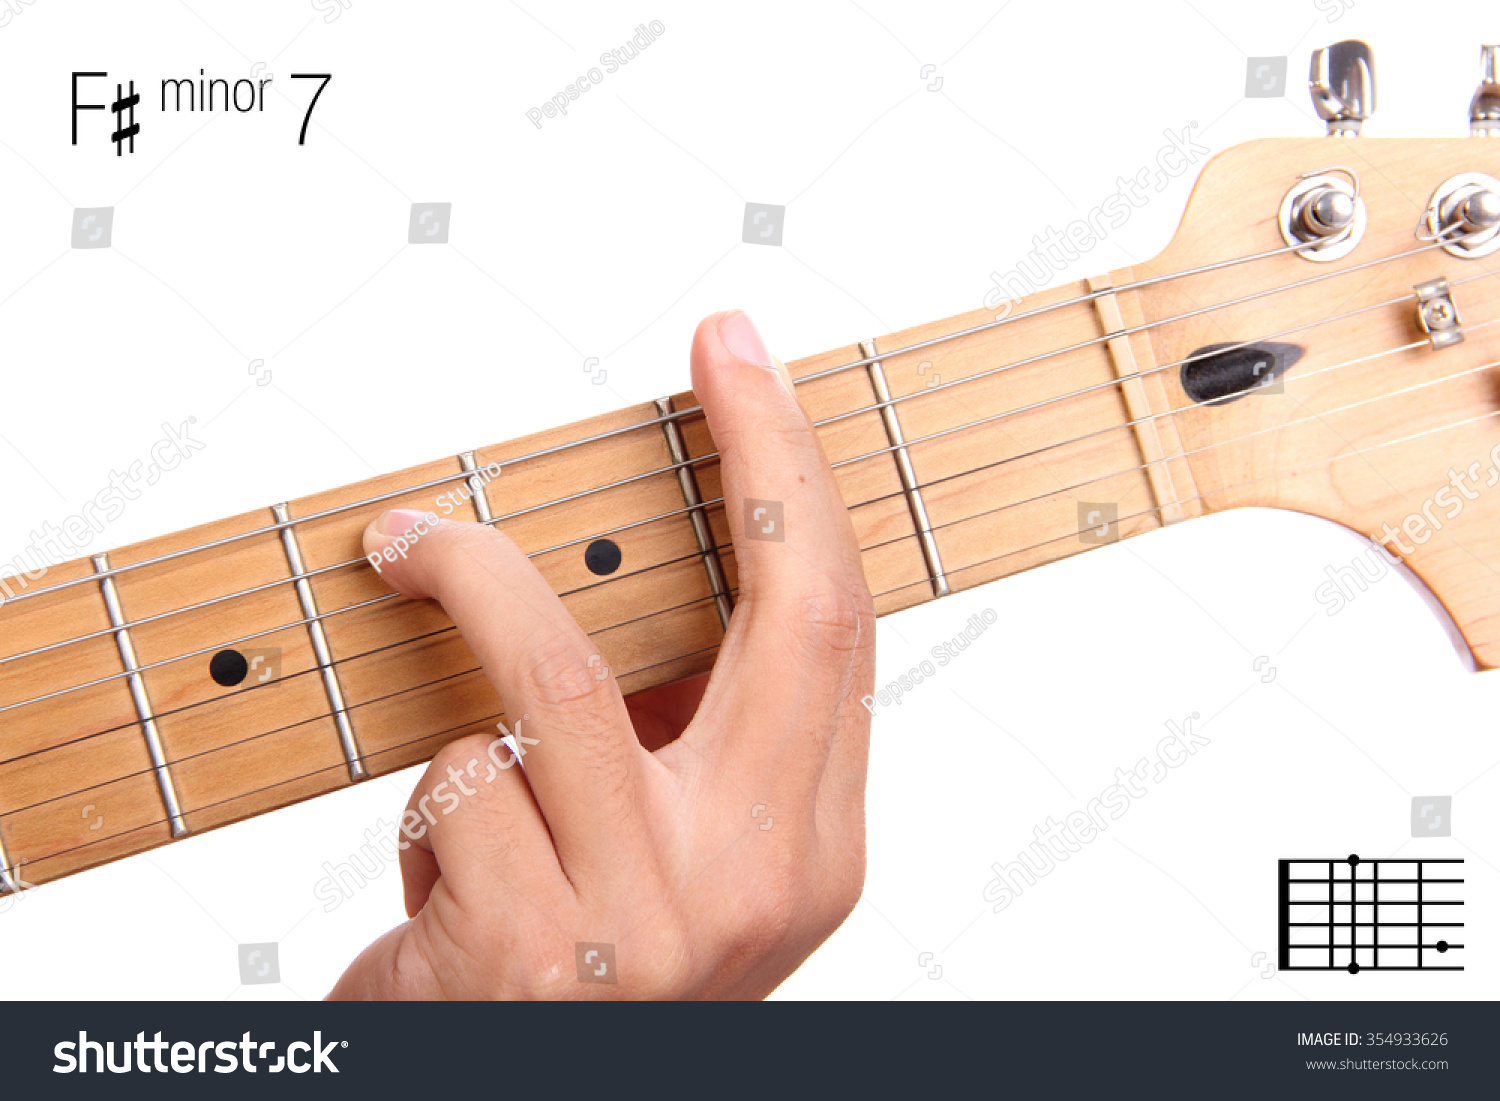 Fm7 minor seventh keys guitar tutorial stock photo 354933626 fm7 minor seventh keys guitar tutorial series closeup of hand playing f hexwebz Choice Image